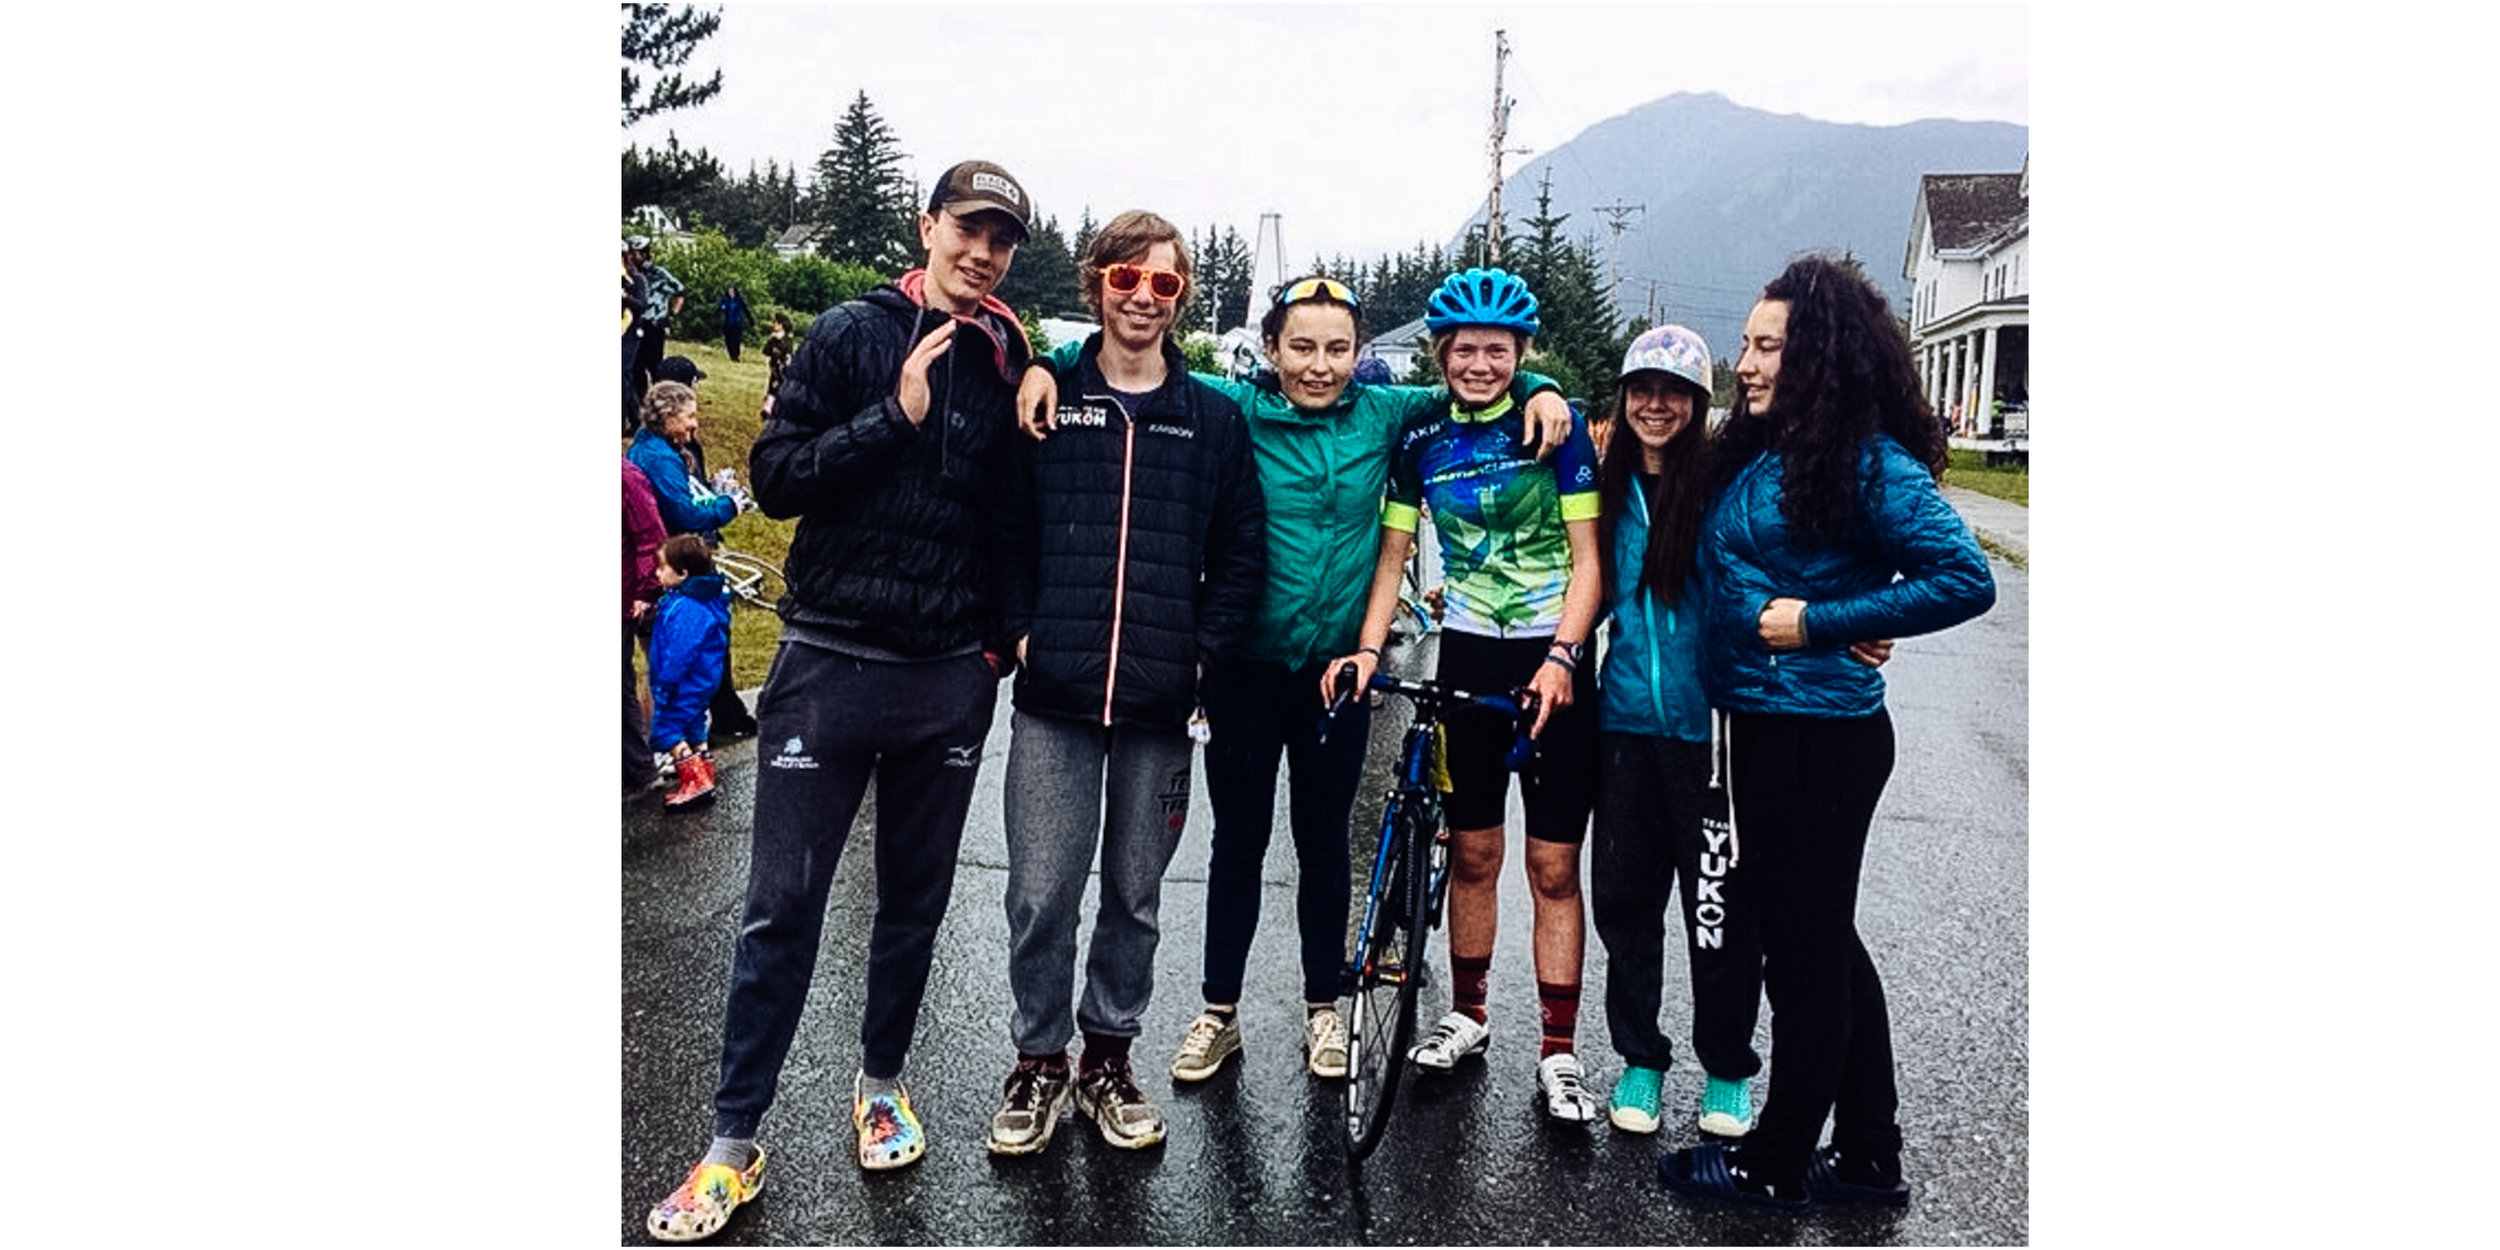 These kids finished first overall in the 8-person team category over 71 teams! They had put together a team of 6 (still qualifying as a team of 8, but the twins were doing 2 legs each) with 2 boys and 2 girls from the cross-country ski team (all 14 or 15 yo).